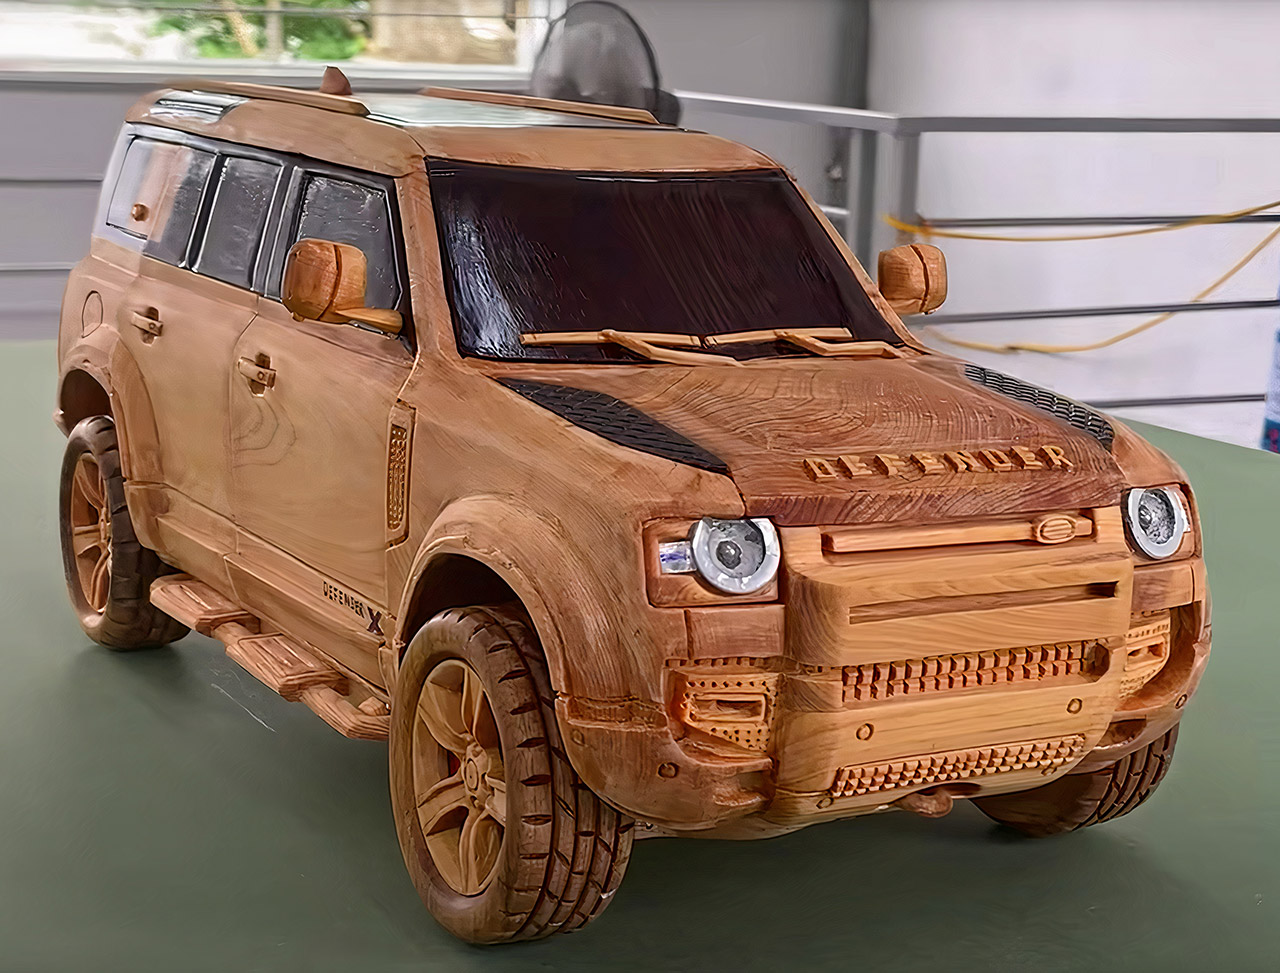 2021 Land Rover Defender 110 X Wood Carving